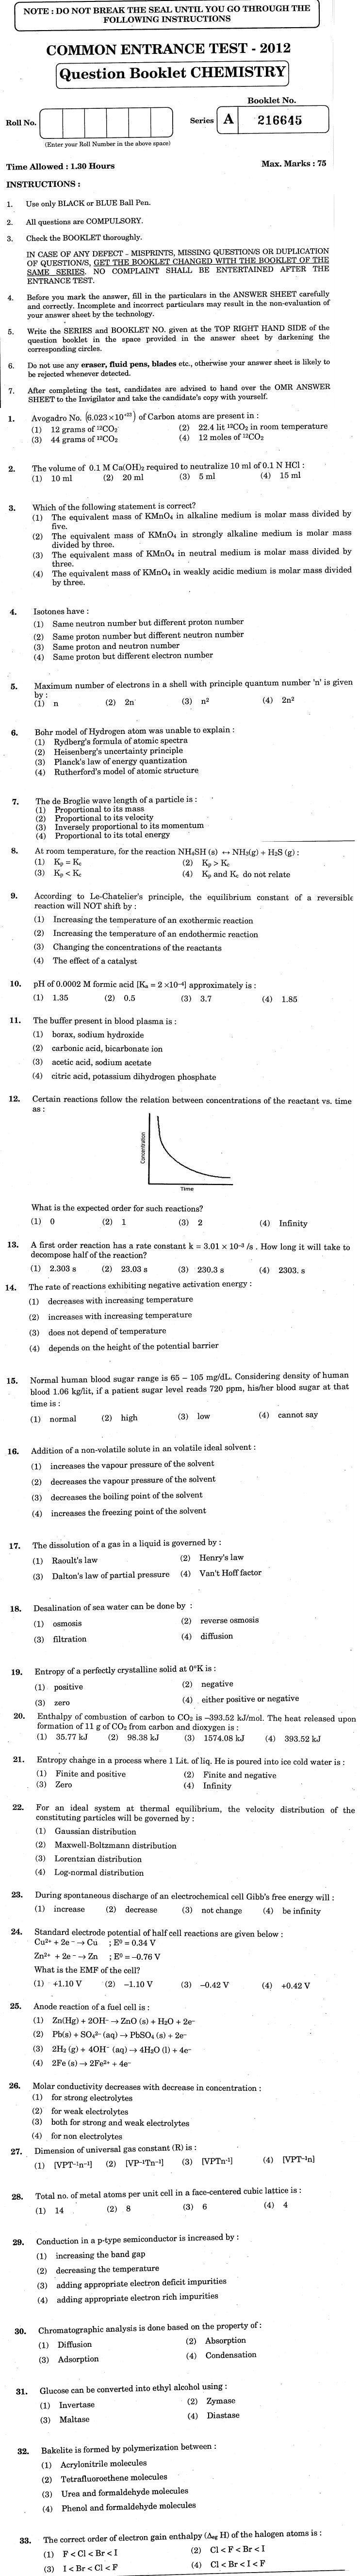 J&K CET 2012 Chemistry Question Paper